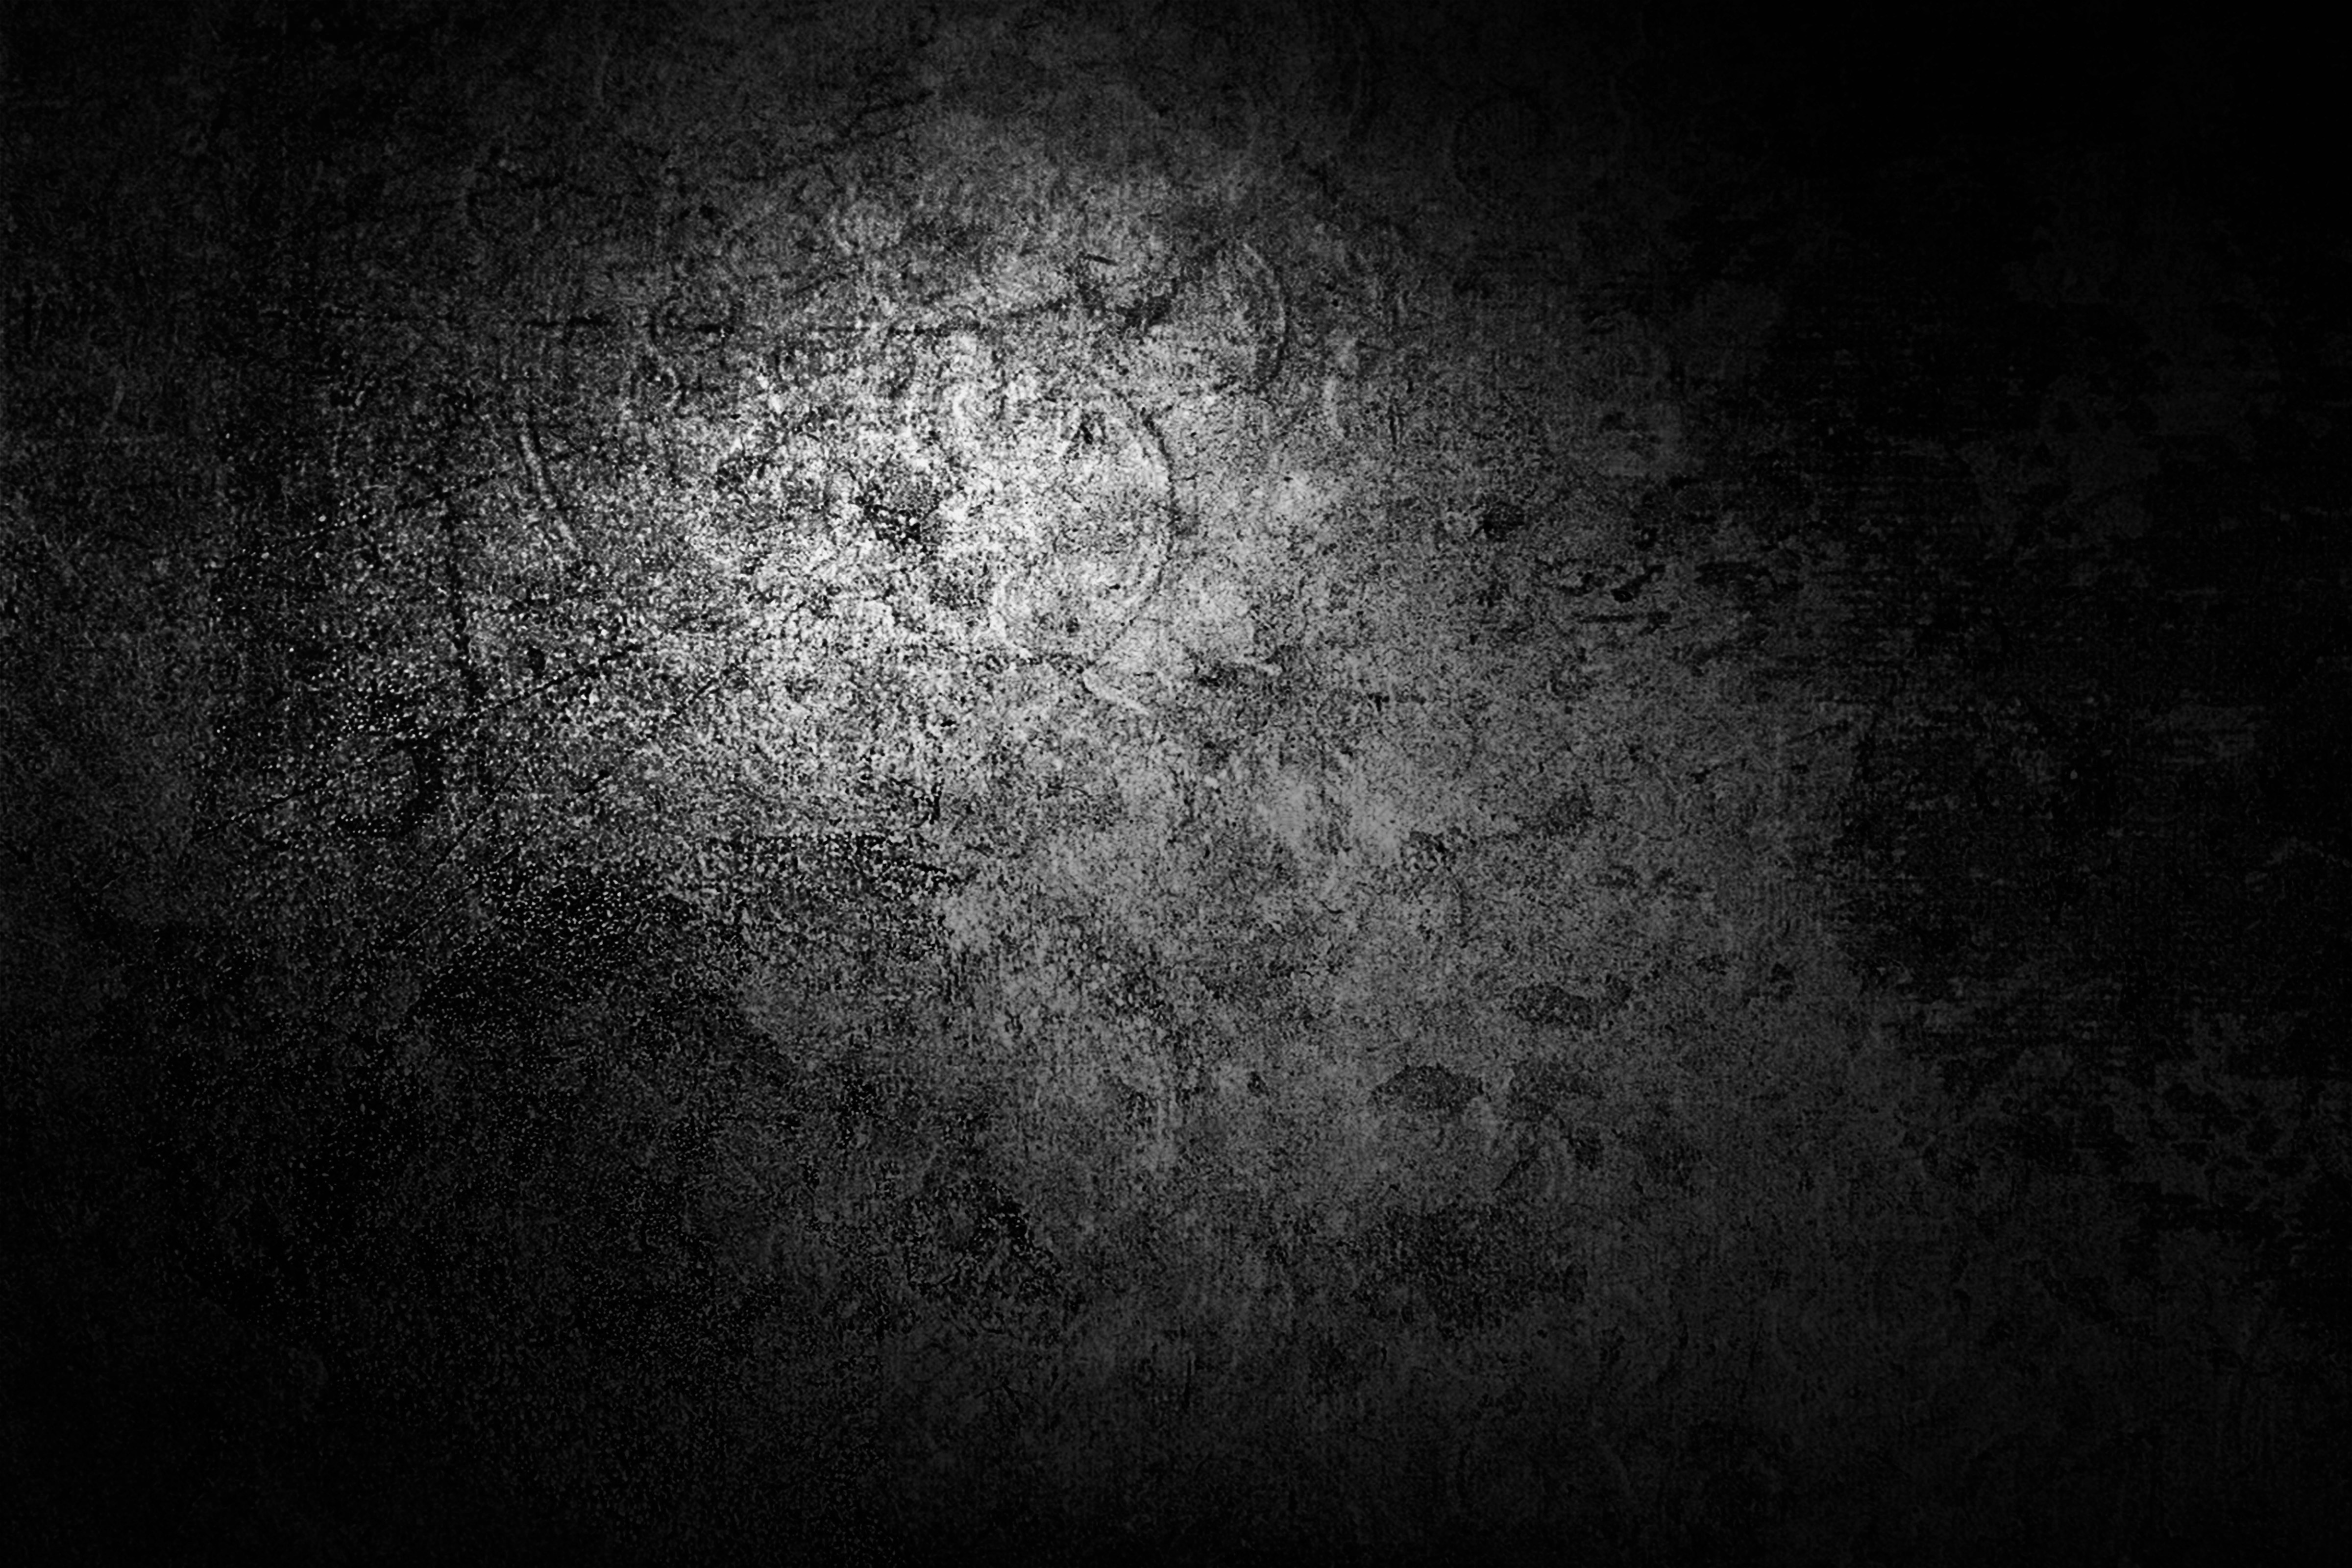 Dark Concrete Floor Texture 66 texture hd wallpapers | backgrounds - wallpaper abyss